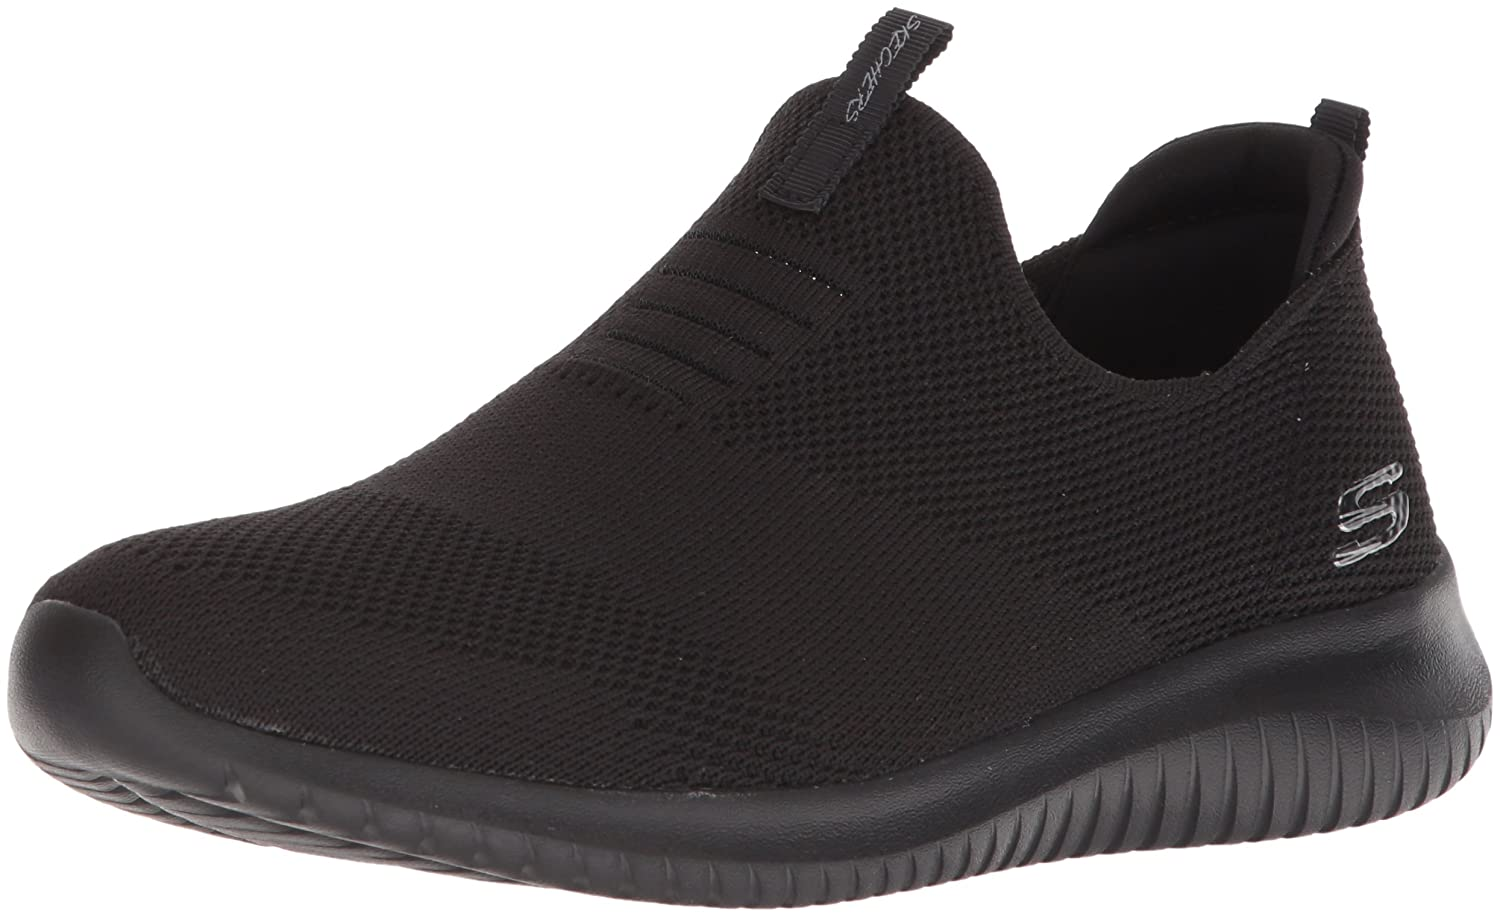 TALLA 39 EU. Skechers Ultra Flex-First Take, Zapatillas sin Cordones para Mujer